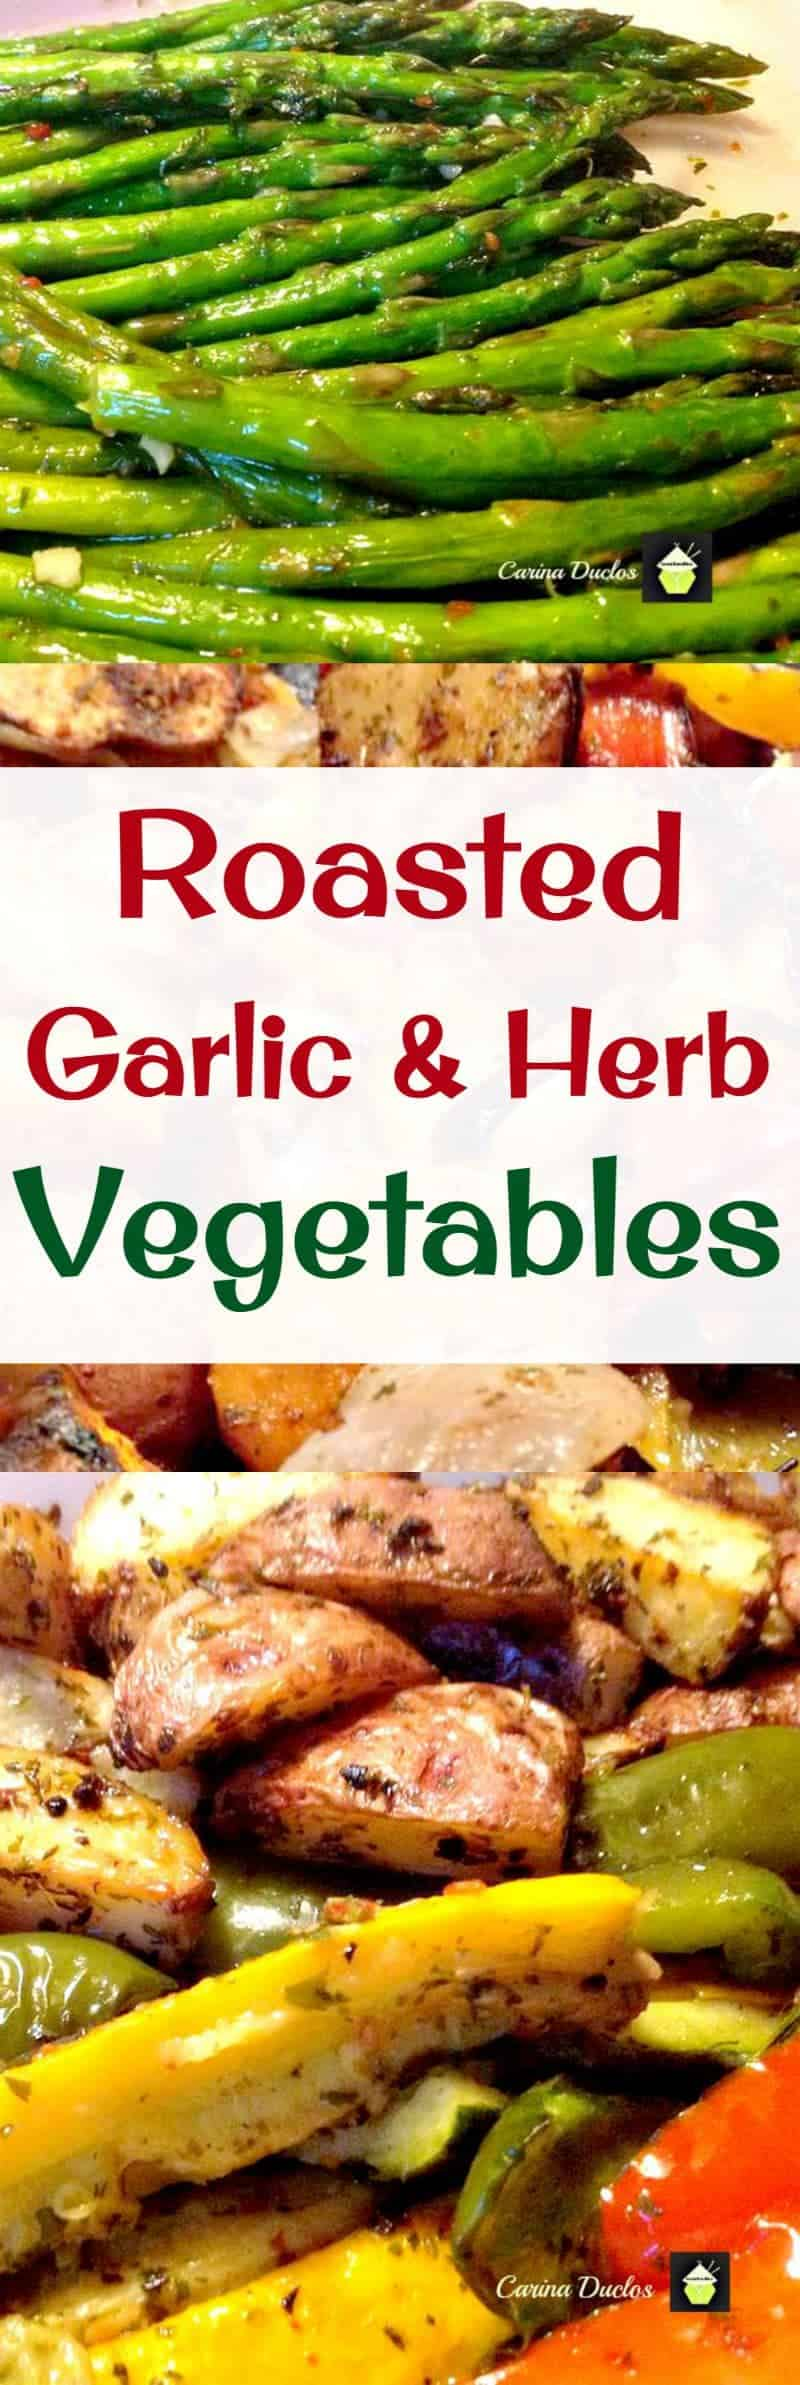 Roasted Garlic & Herb Vegetables. Easy to make and all in one pan!